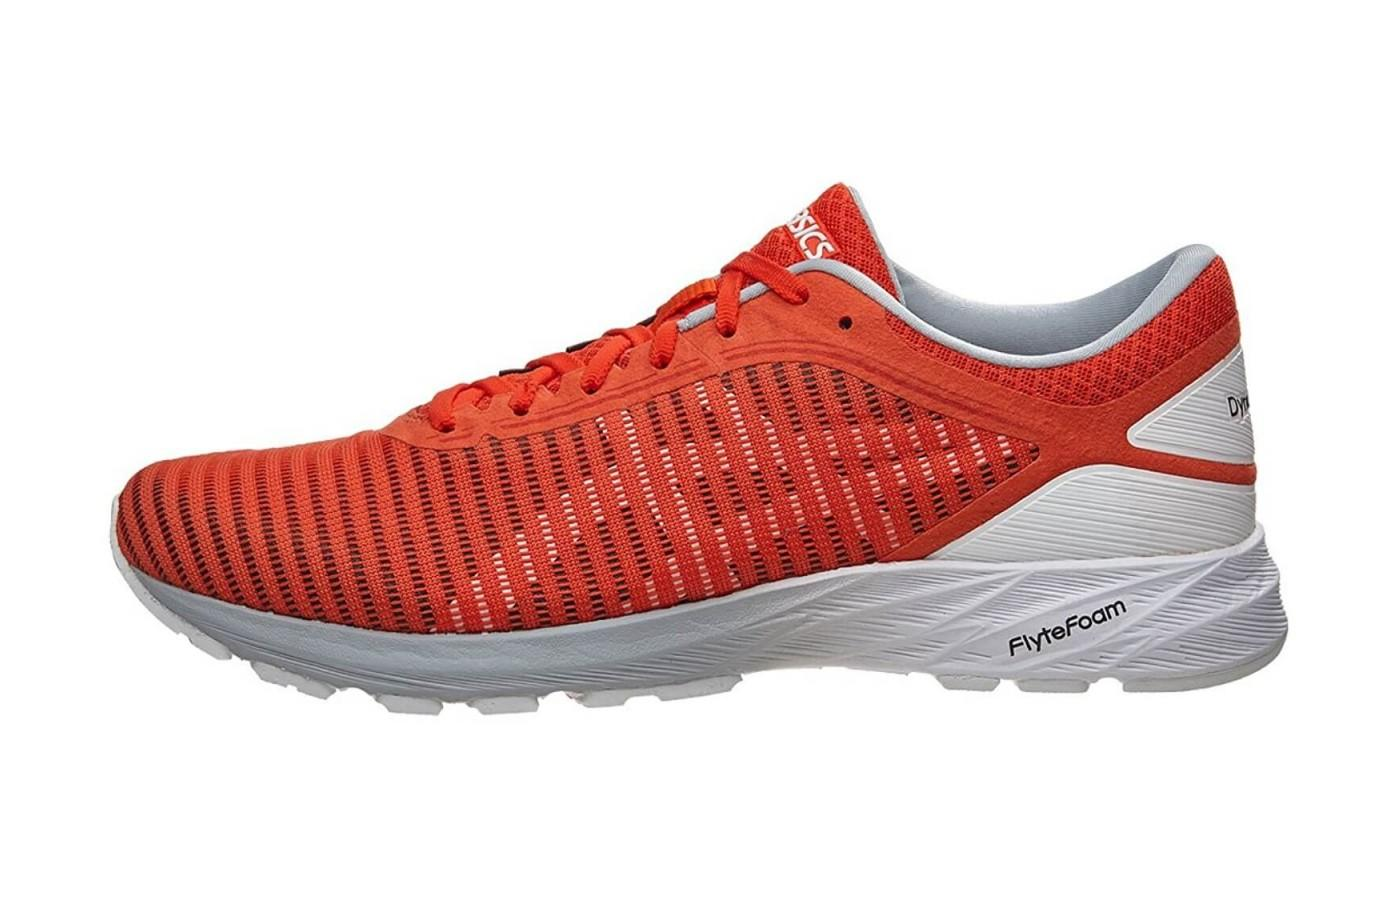 2bfac577697b Asics DynaFlyte 2. The midsole features a lightweight cushioning.